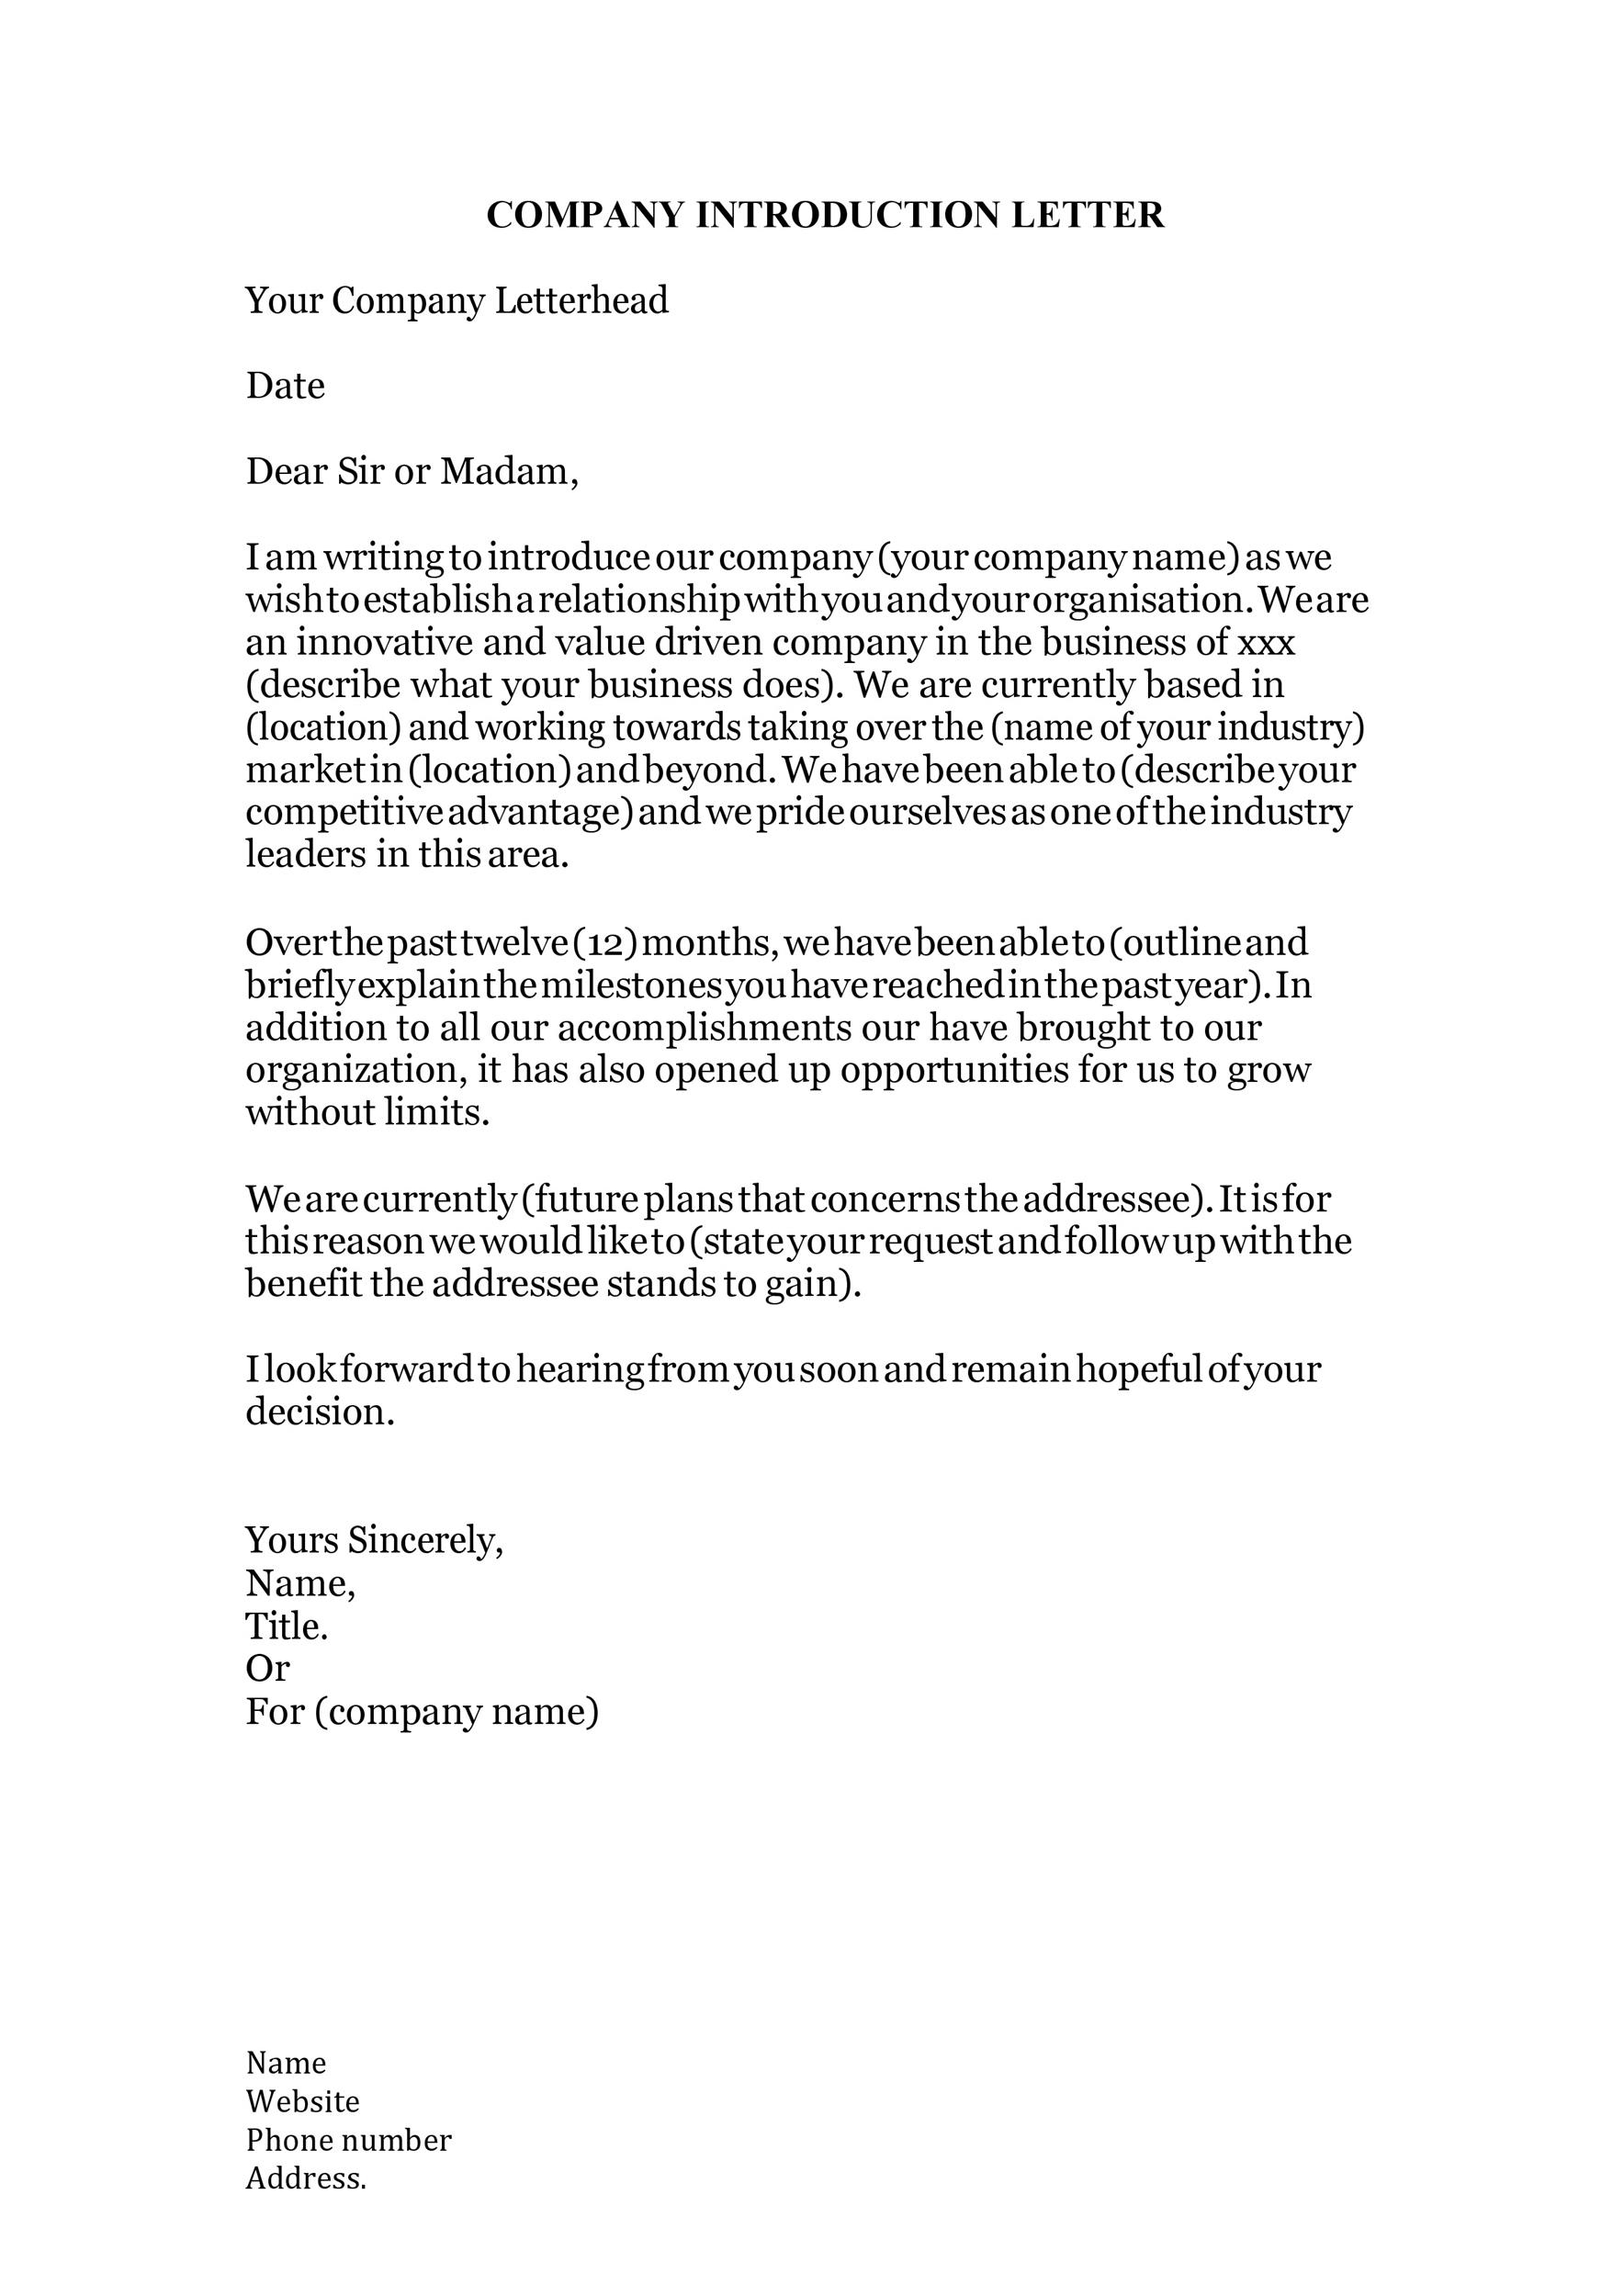 Free business introduction letter 21